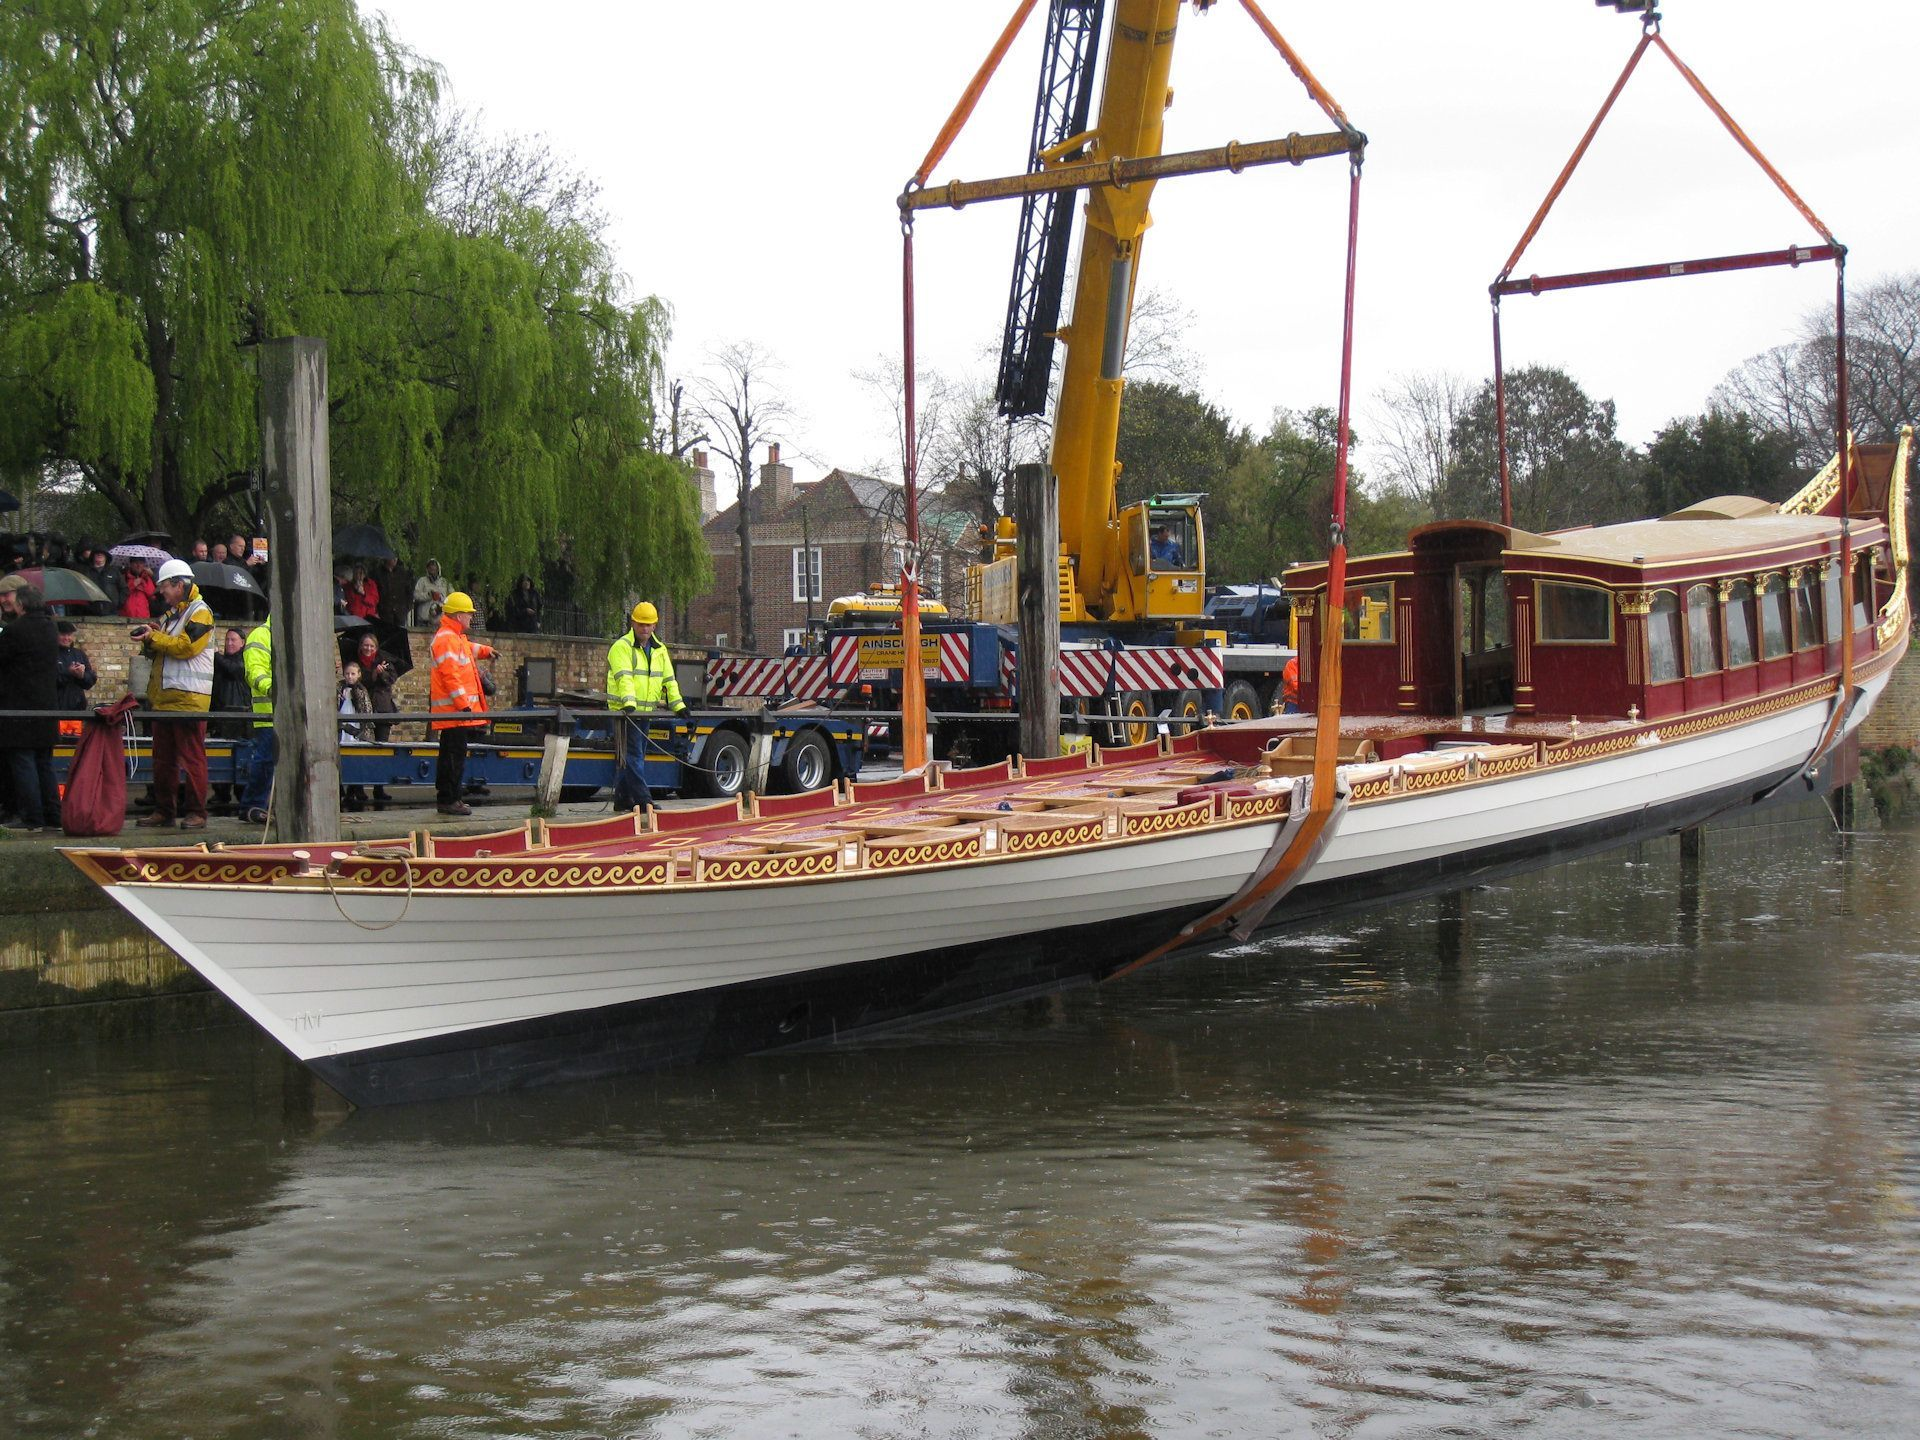 Gloriana getting wet!